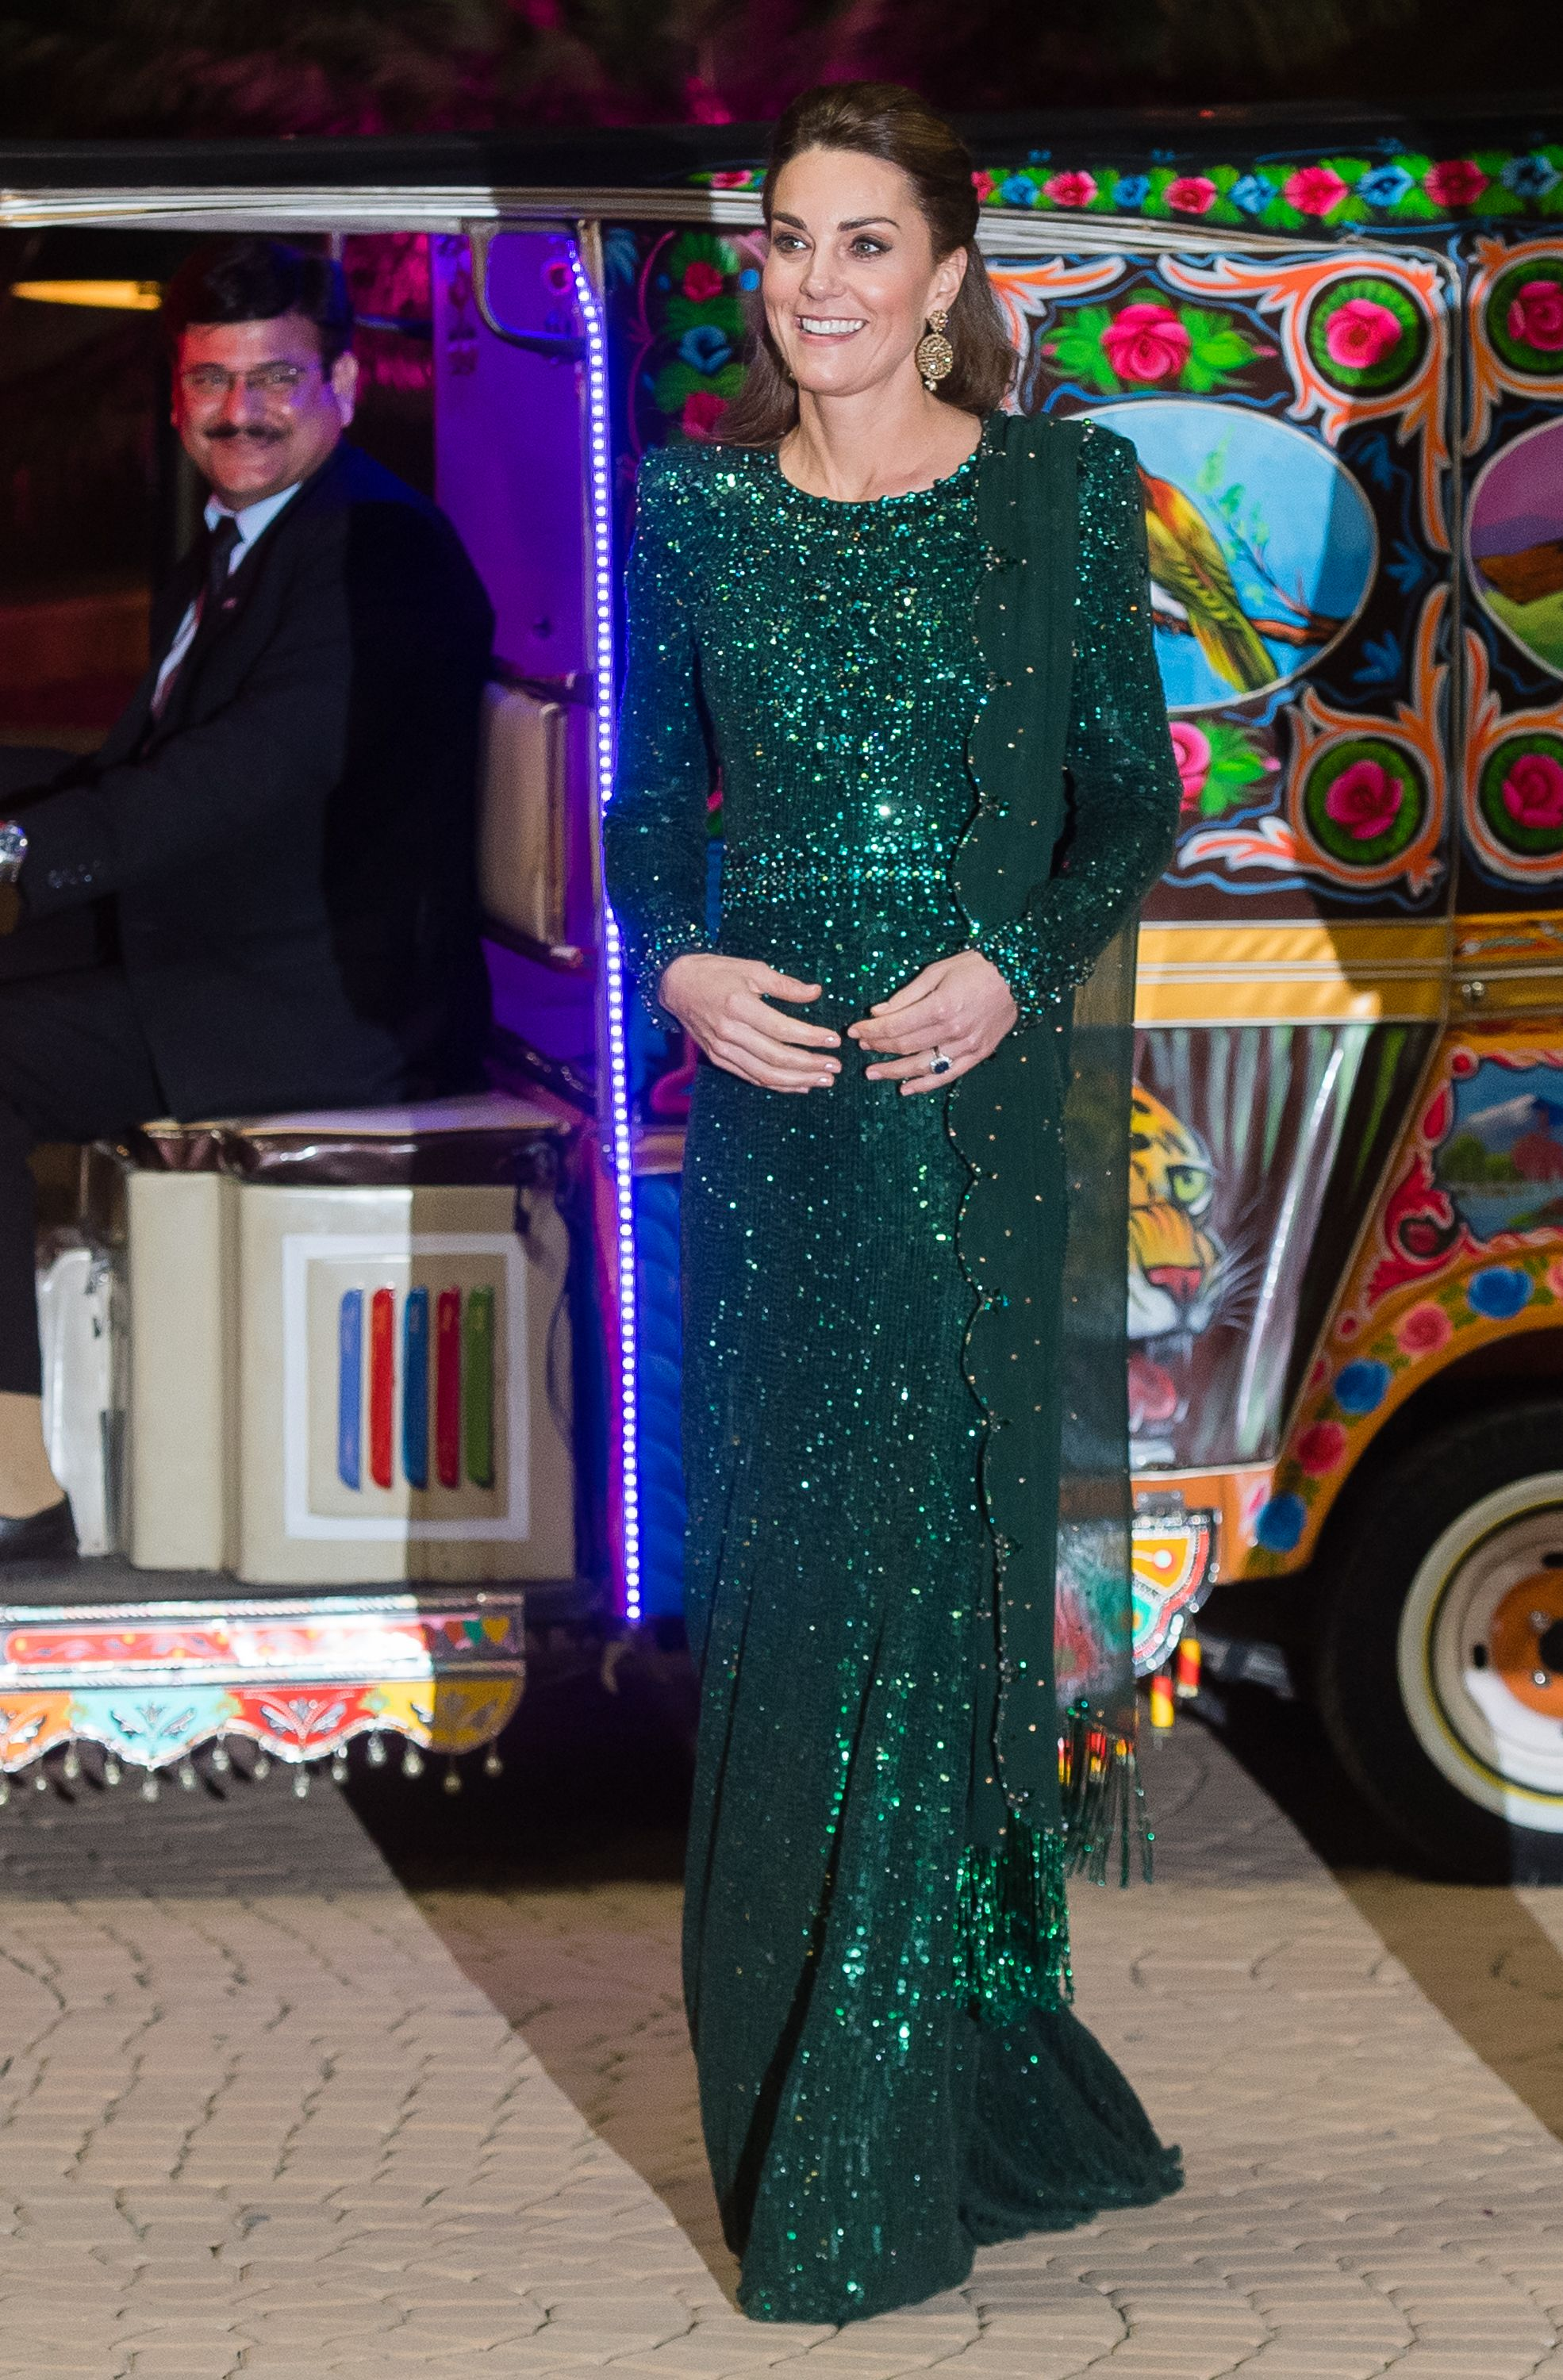 Kate Middleton Best Fashion And Style Moments Kate Middleton S Favorite Outfits